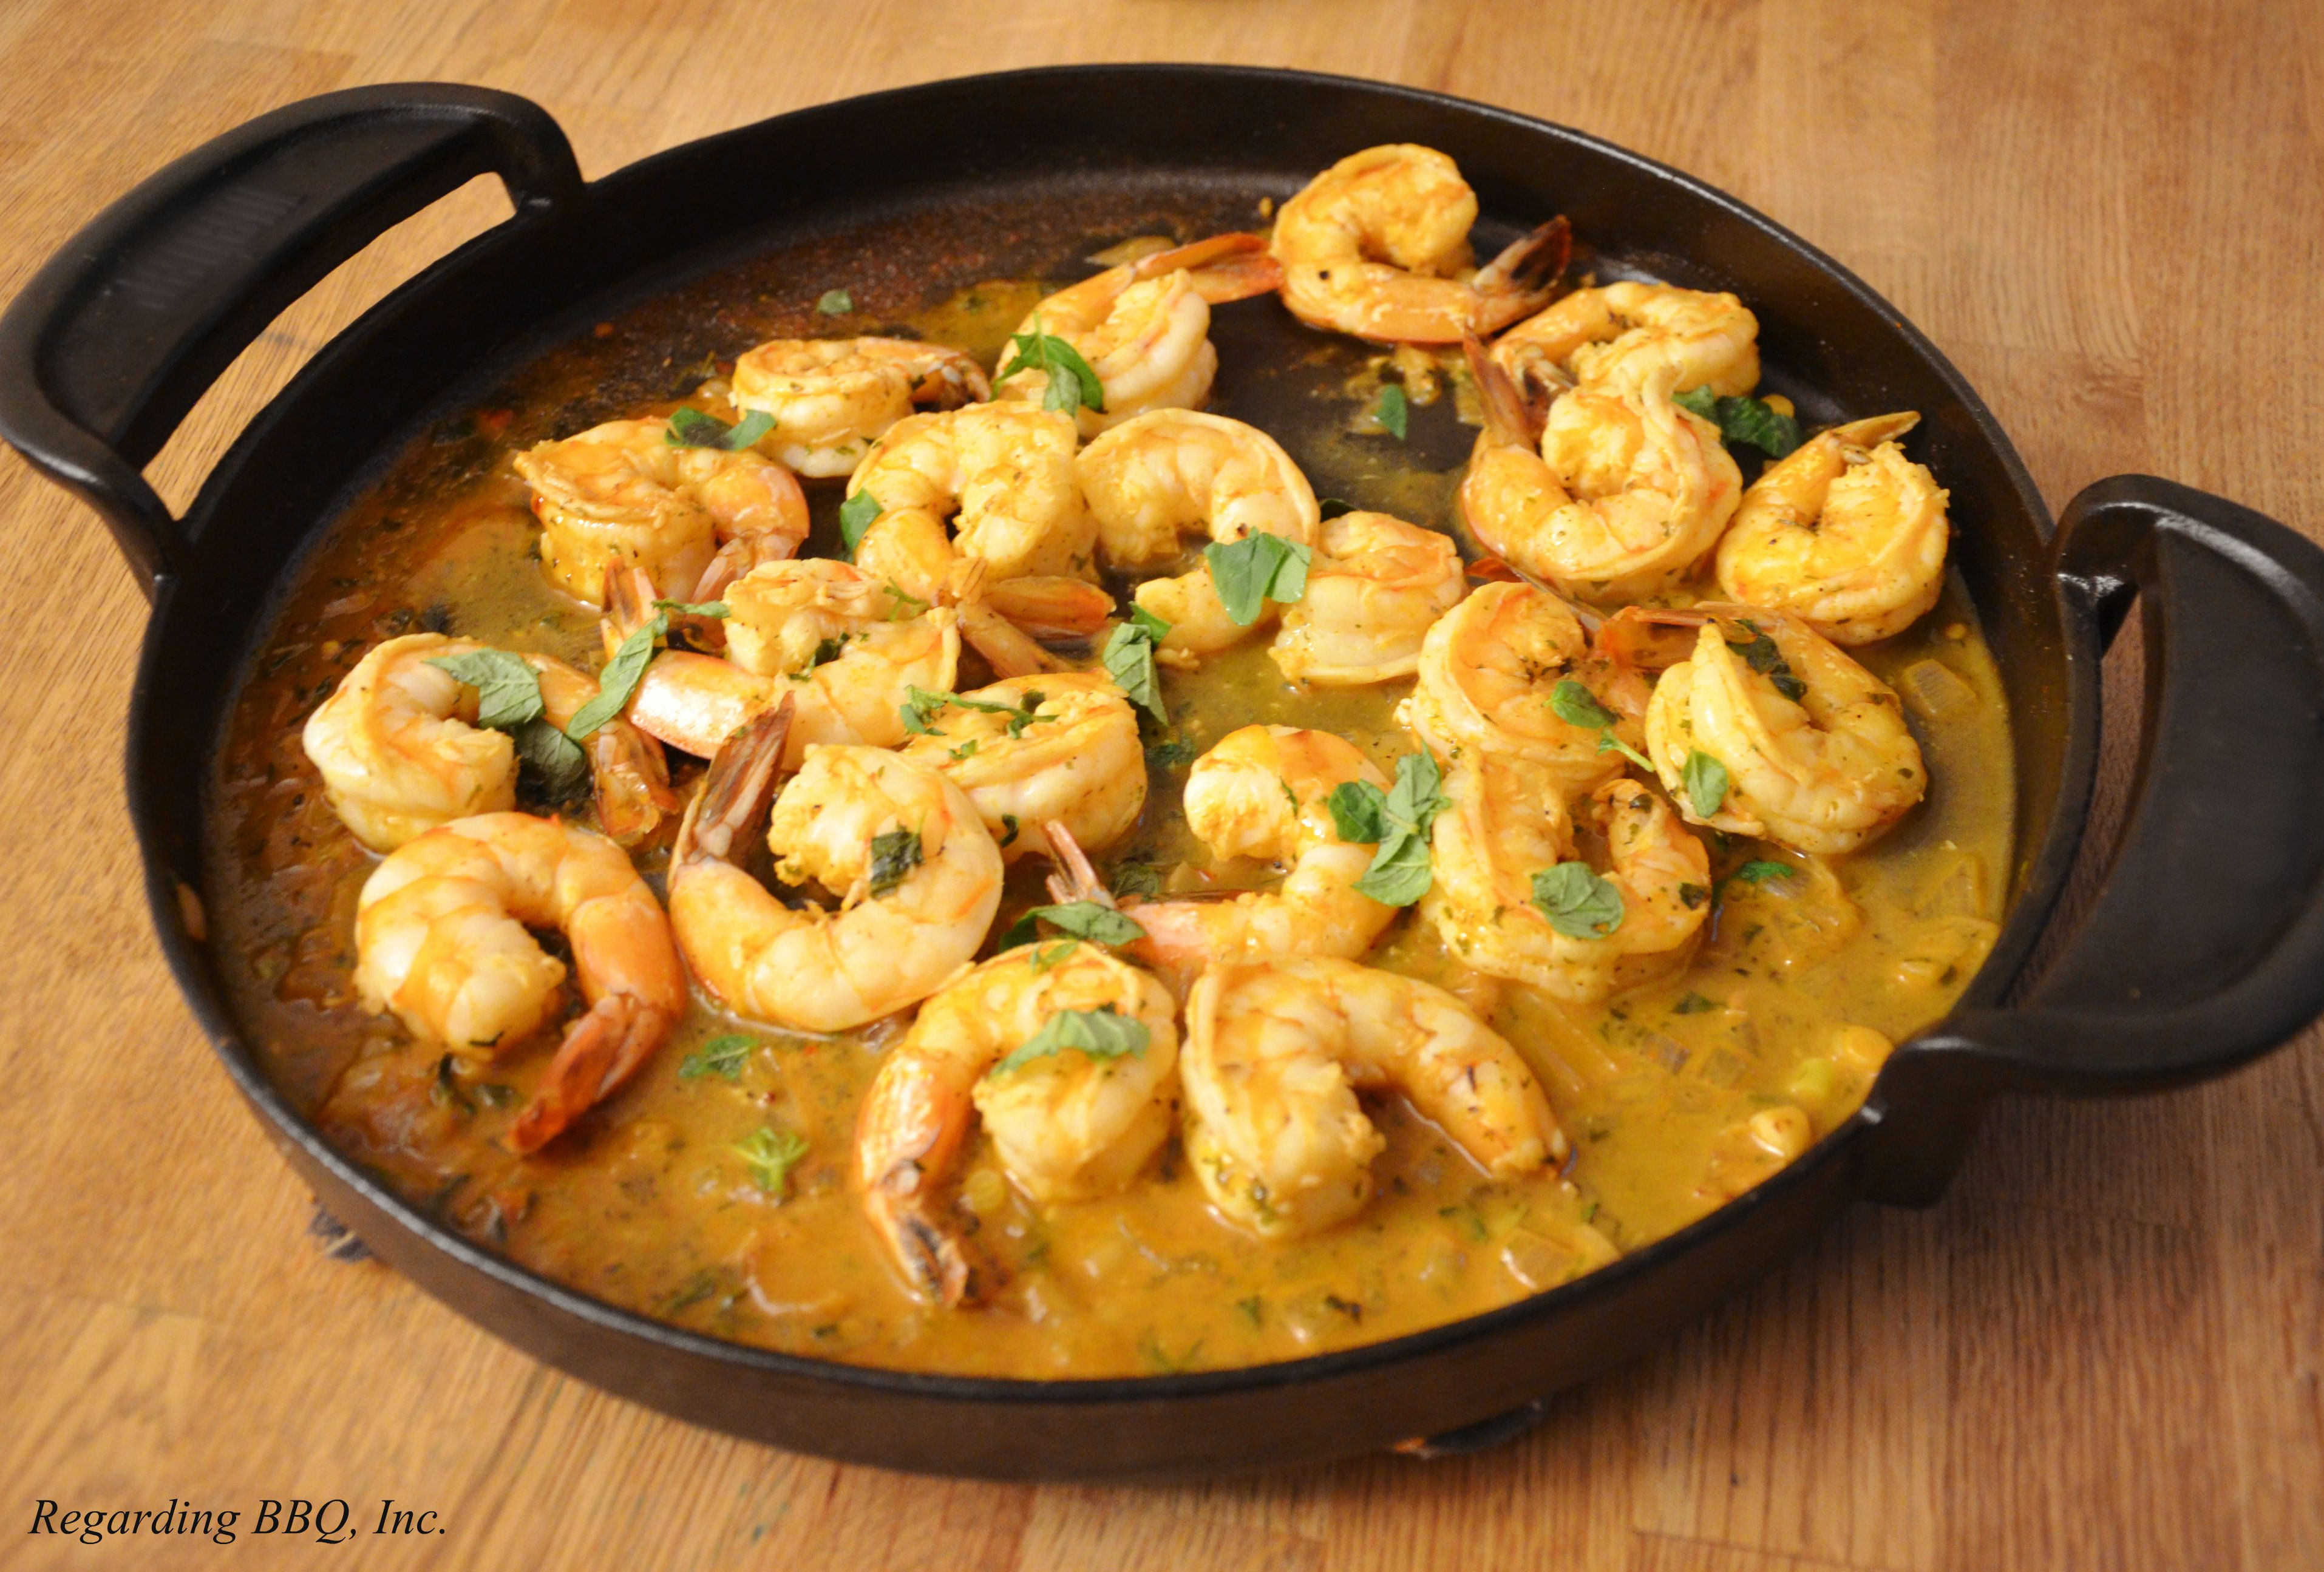 New Orleans-Style Barbeque Shrimp